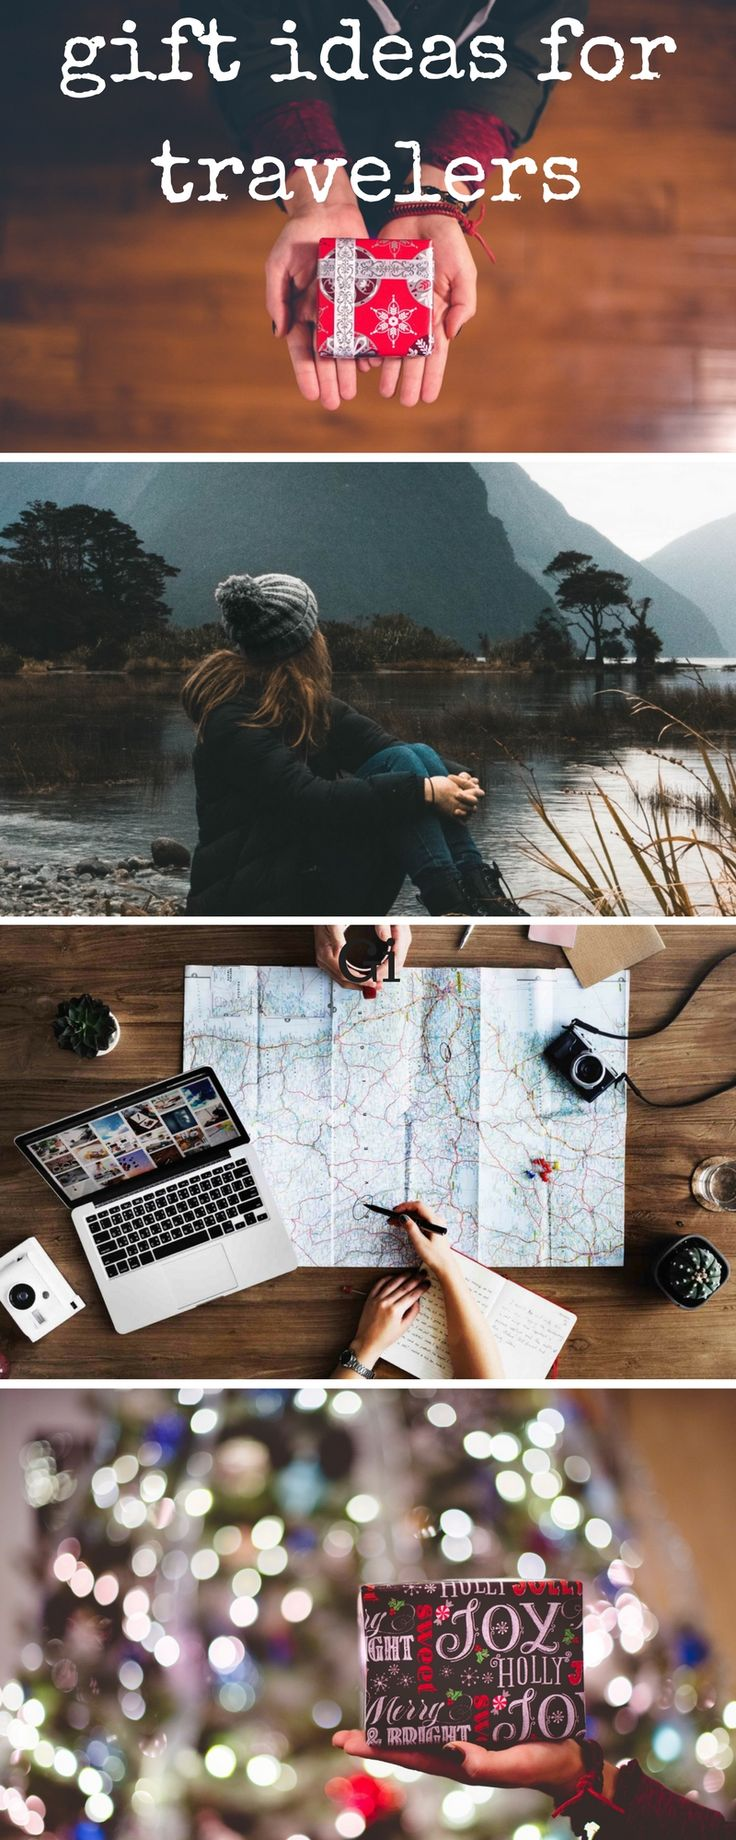 All the best ideas for Christmas gifts. These are great gifts for both men and women travelers going around the world.